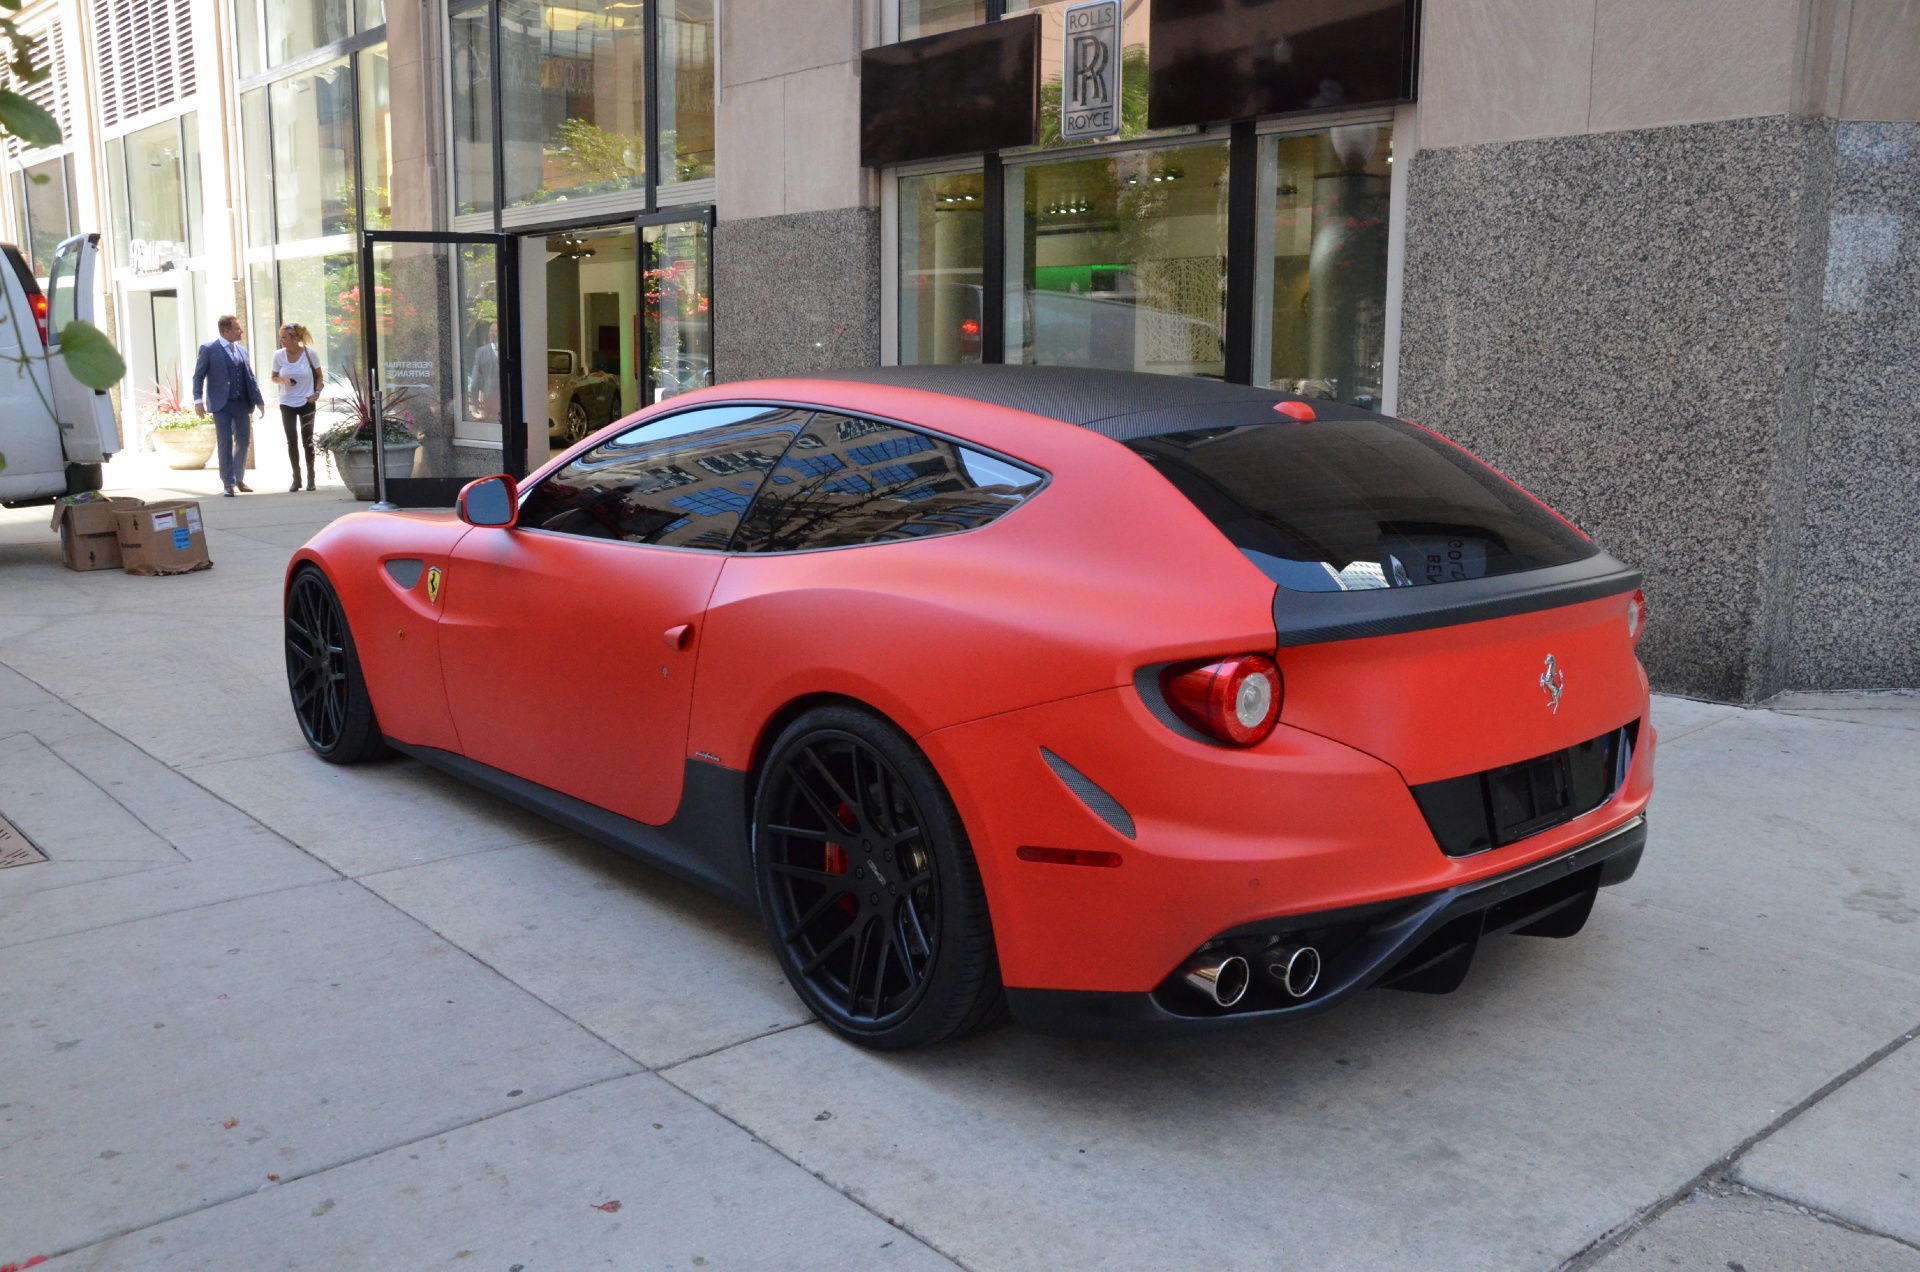 2012 ferrari ff stock bs18891 for sale near chicago il il ferrari dealer. Black Bedroom Furniture Sets. Home Design Ideas